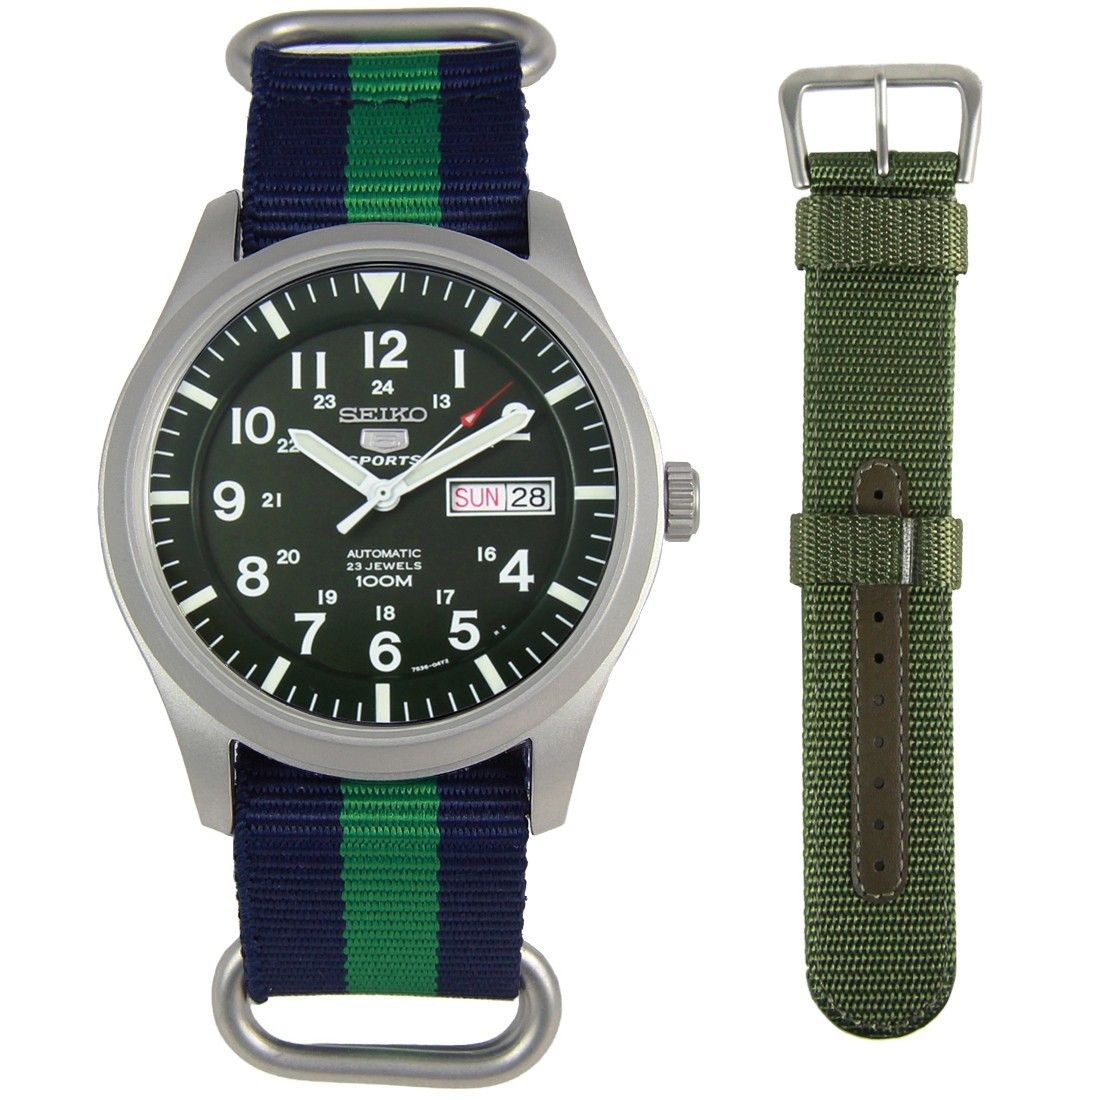 SNZG09K1 Seiko 5 Sports Watch + ADDITIONAL STRAP #sportswatches